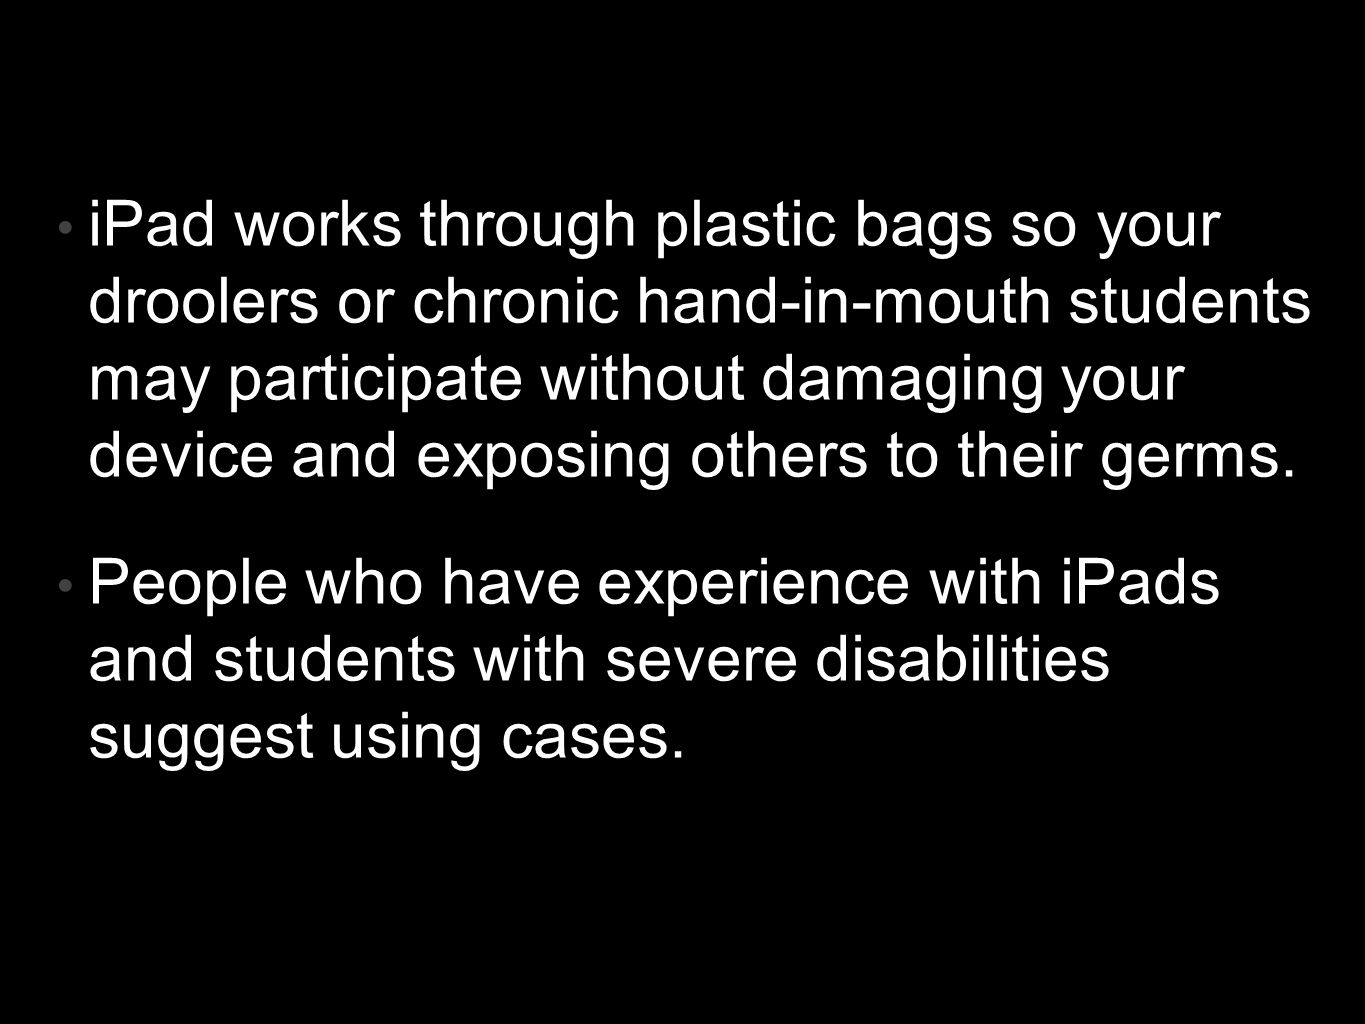 iPad works through plastic bags so your droolers or chronic hand-in-mouth students may participate without damaging your device and exposing others to their germs.